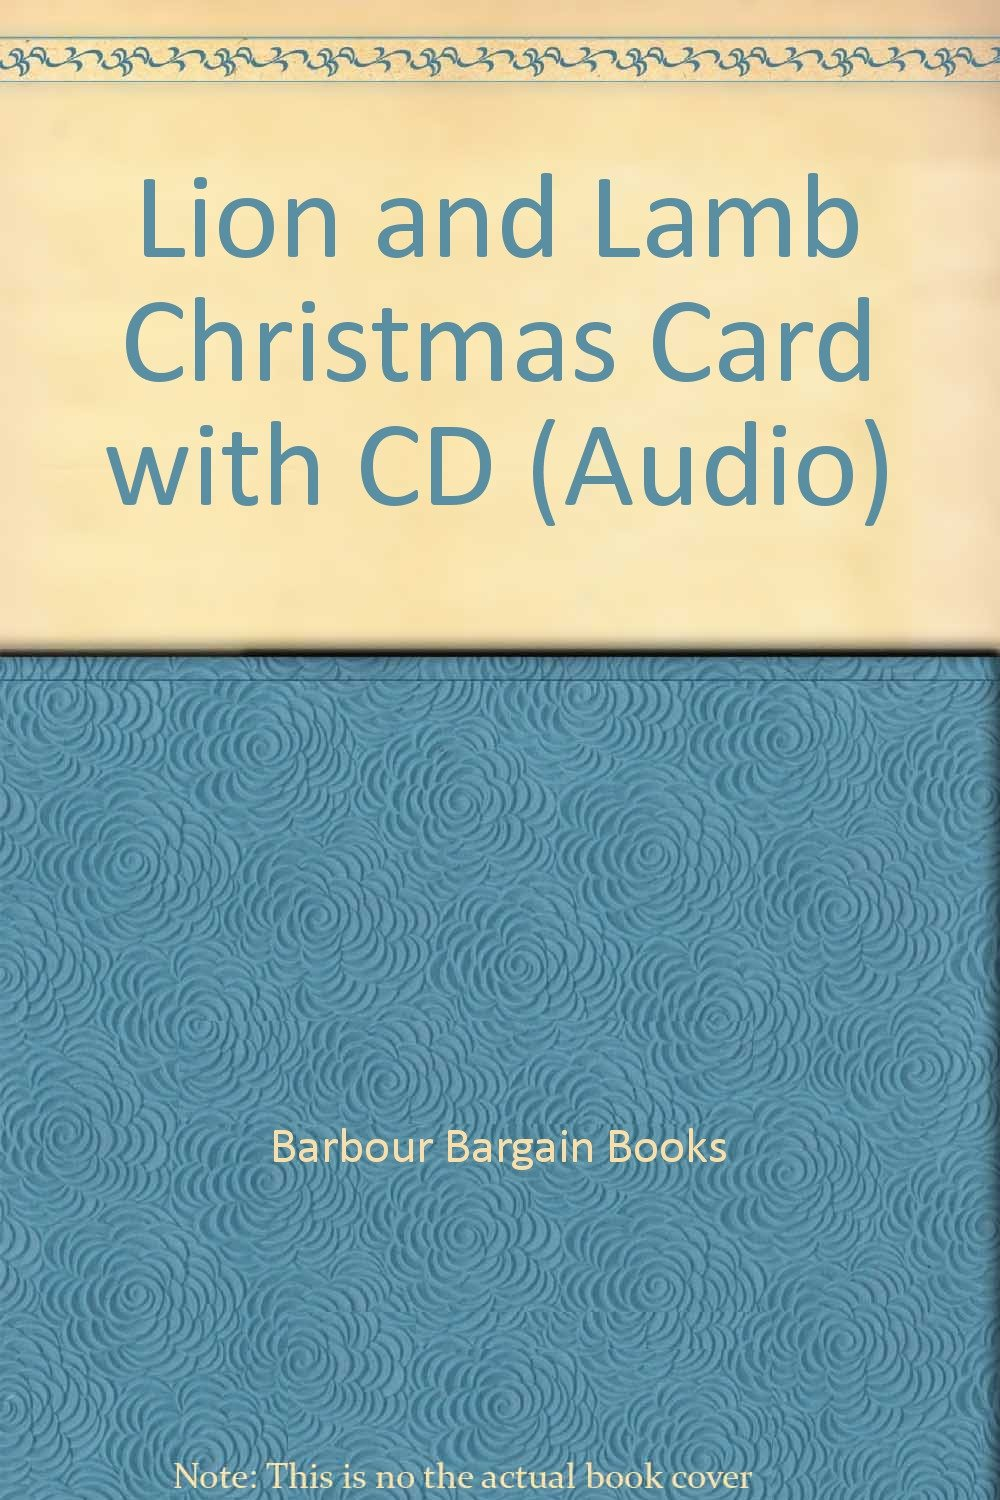 Lion and Lamb Christmas Card with CD (Audio): Barbour Bargain Books ...